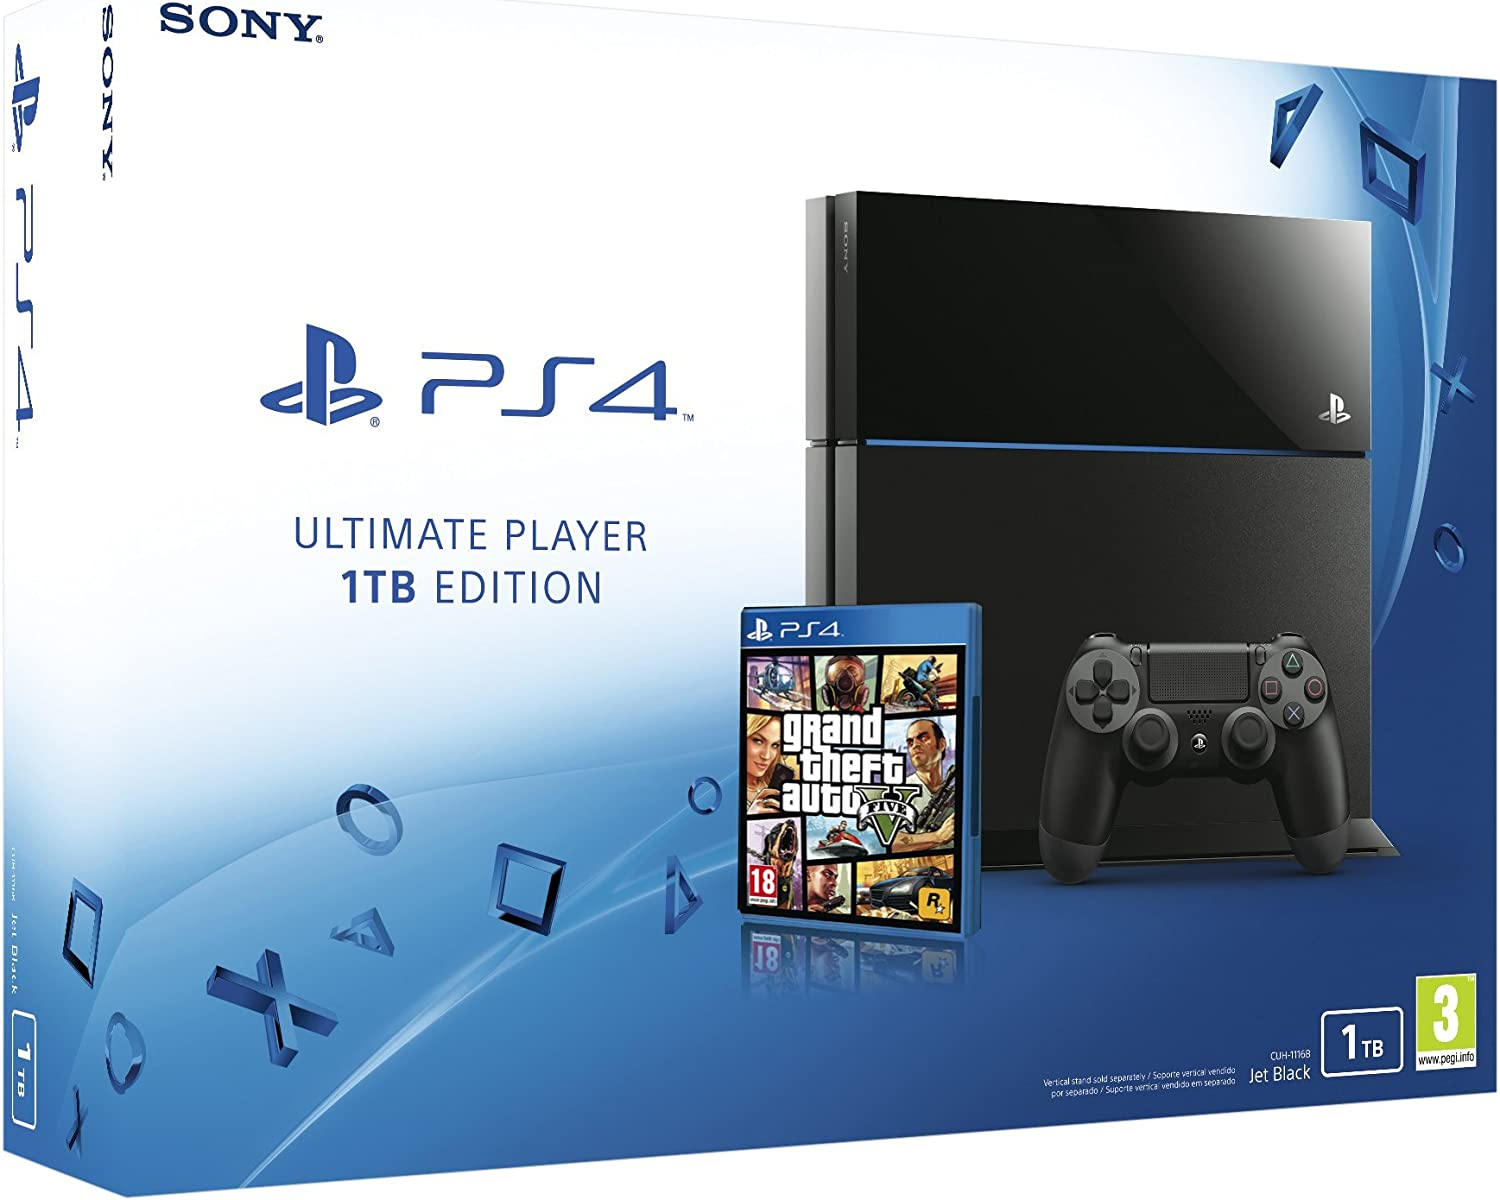 PlayStation 4 - Consola 1 TB + Grand Theft Auto V: Amazon.es: Videojuegos